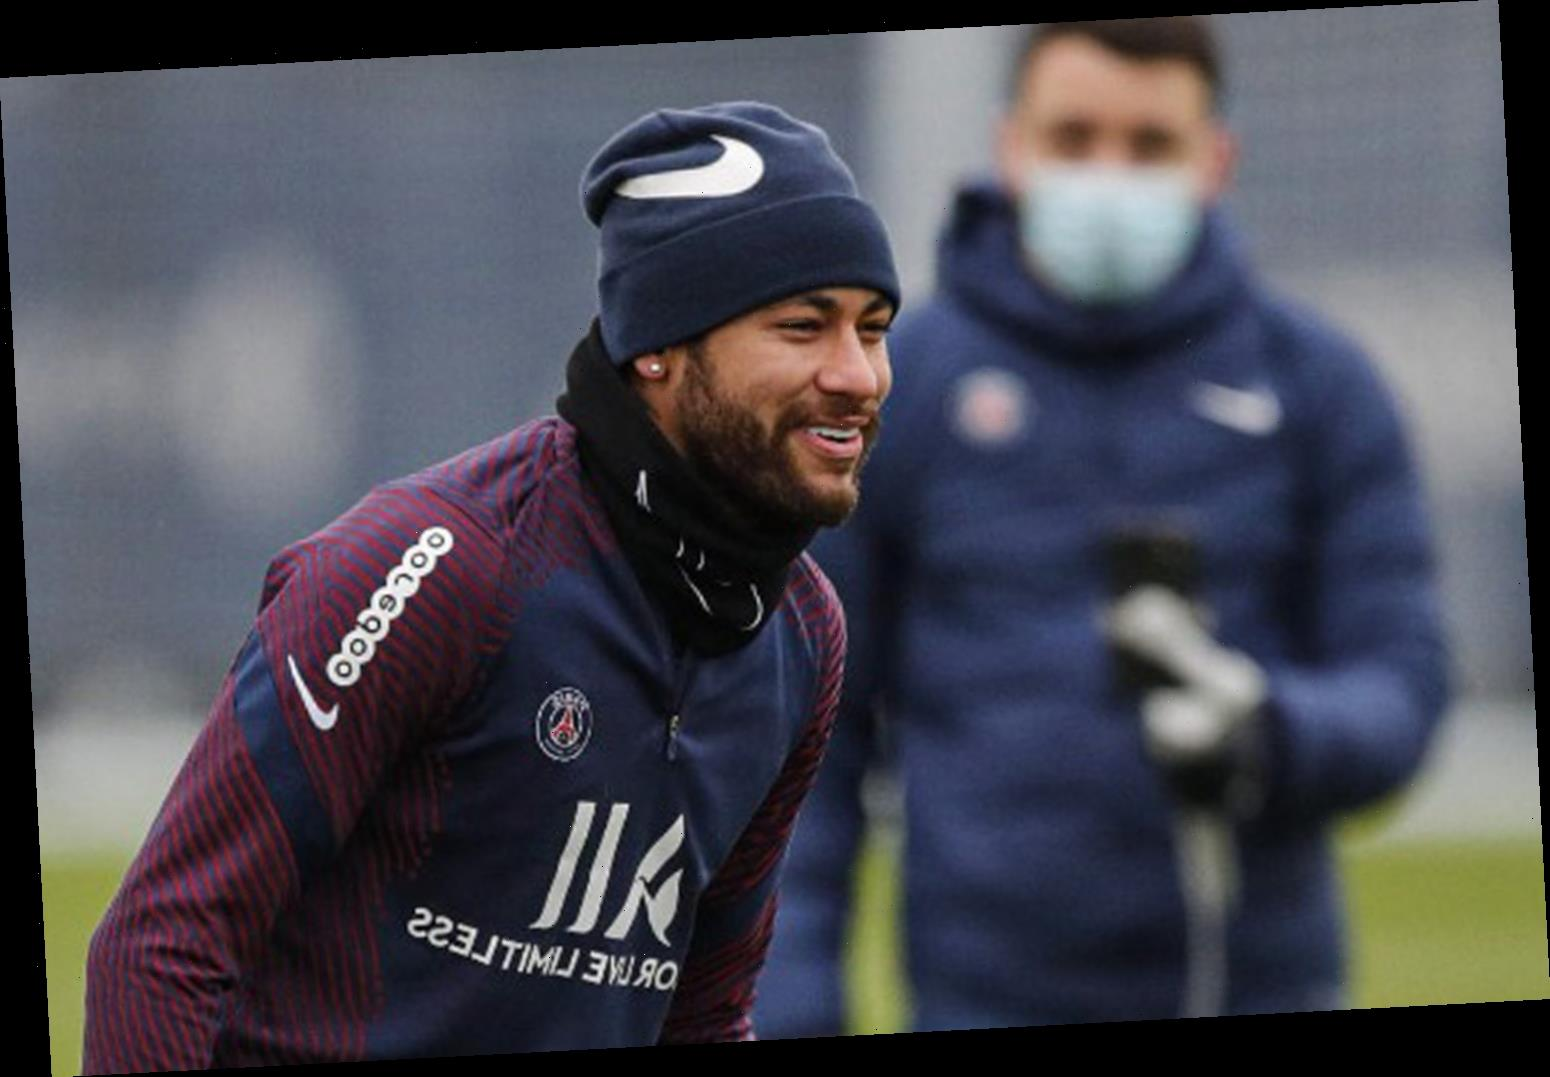 Neymar returns to PSG training after month out injured for first session with Pochettino in boost to new manager